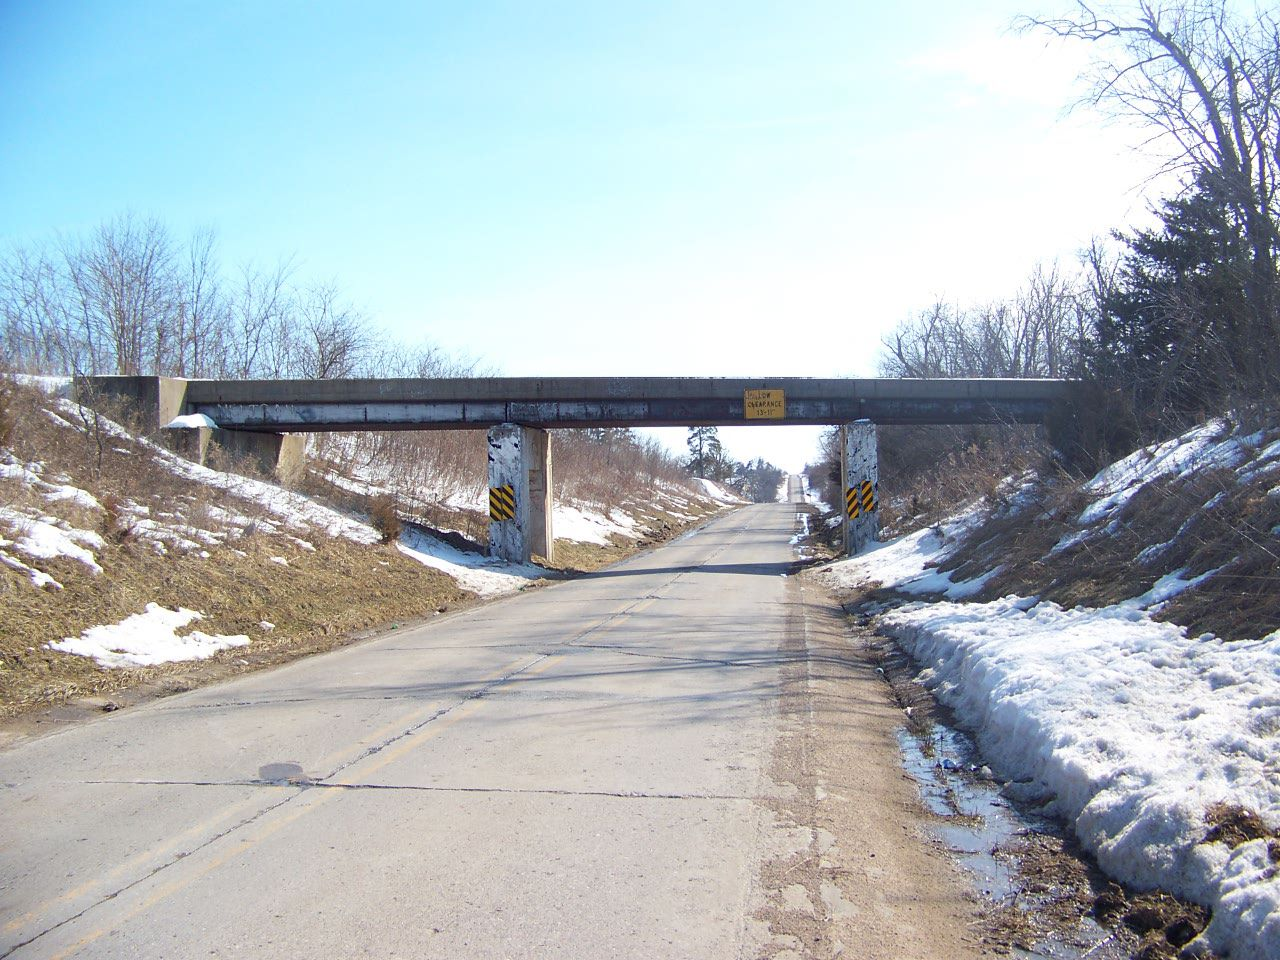 ISRY - 645th Avenue Overpass